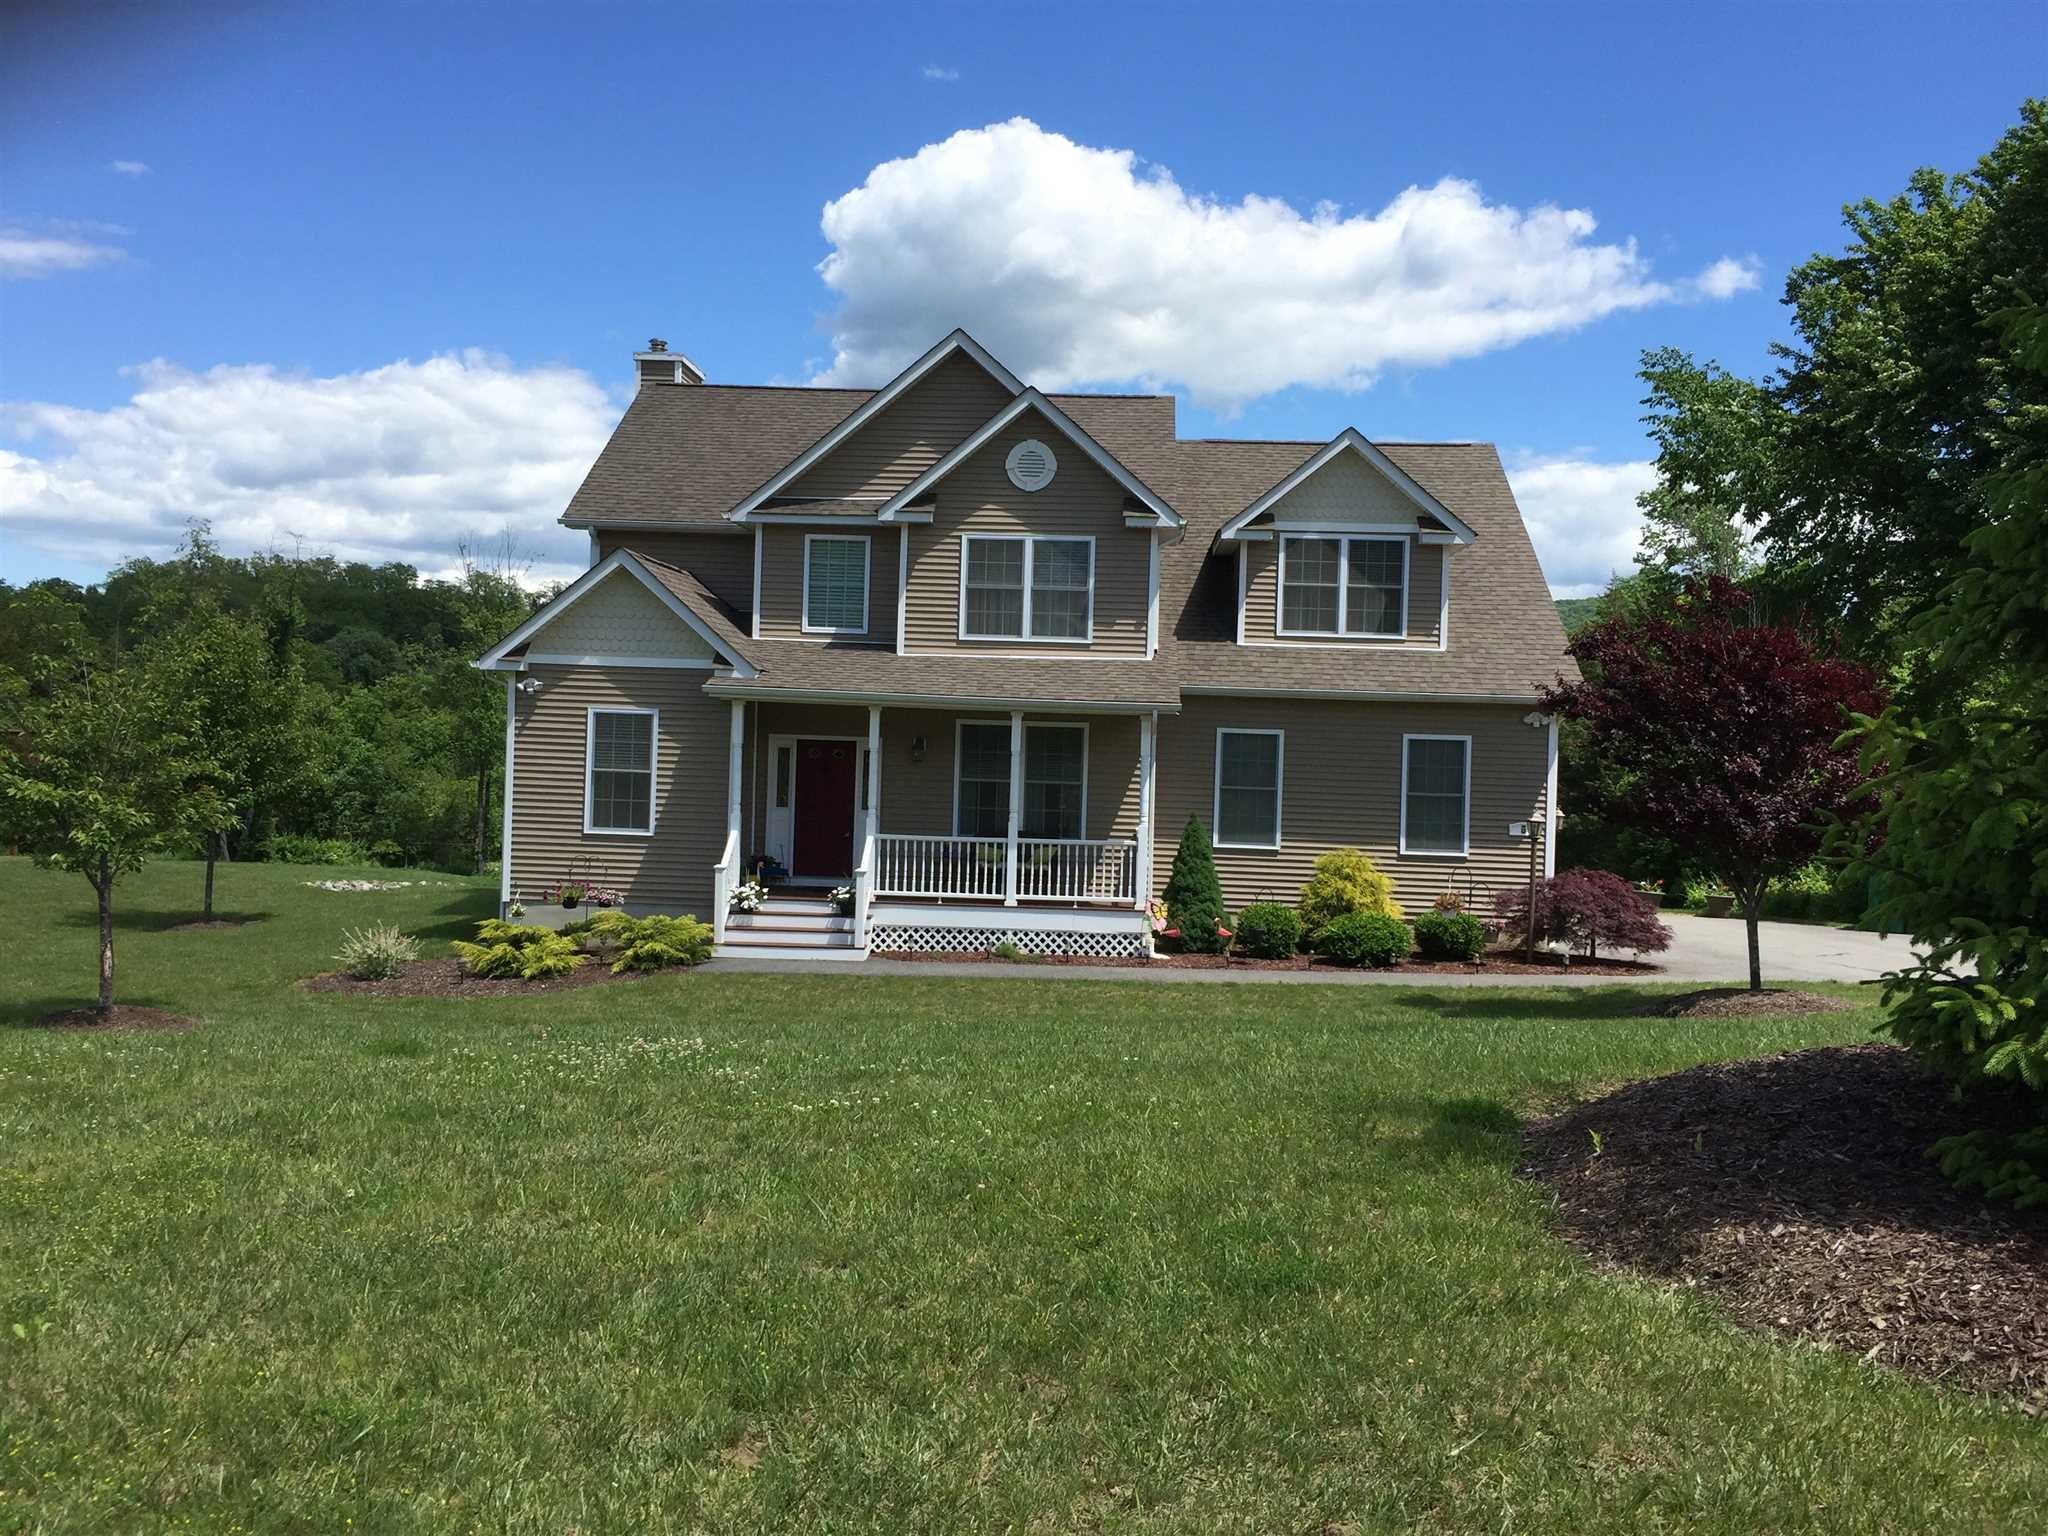 Single Family Home for Sale at 6 TWIN PONDS Court 6 TWIN PONDS Court East Fishkill, New York 12582 United States